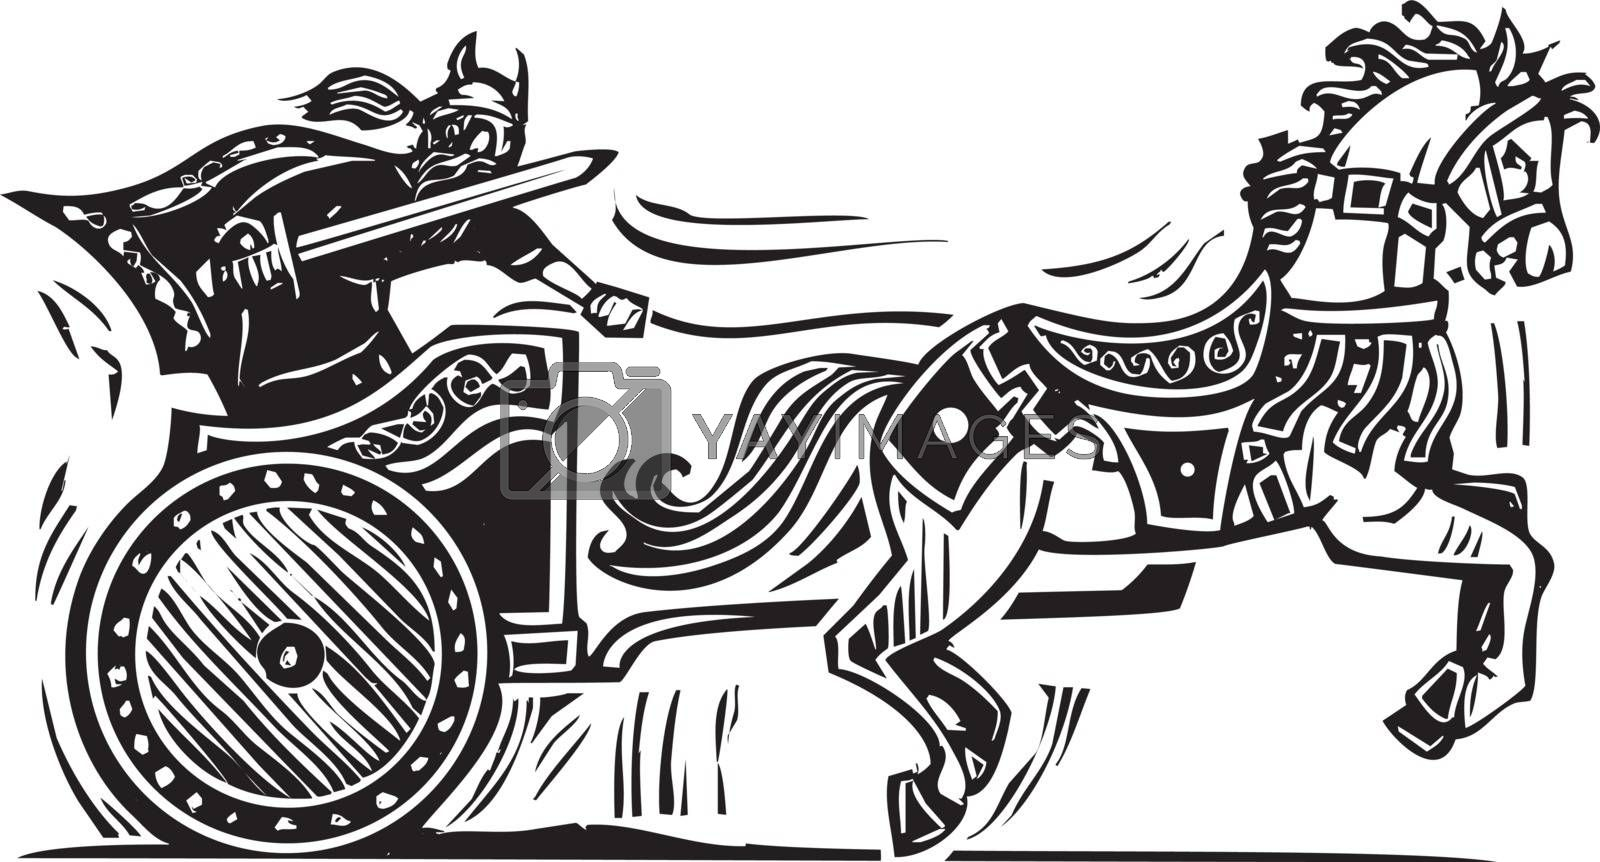 Woodcut style image of a Viking riding a chariot.